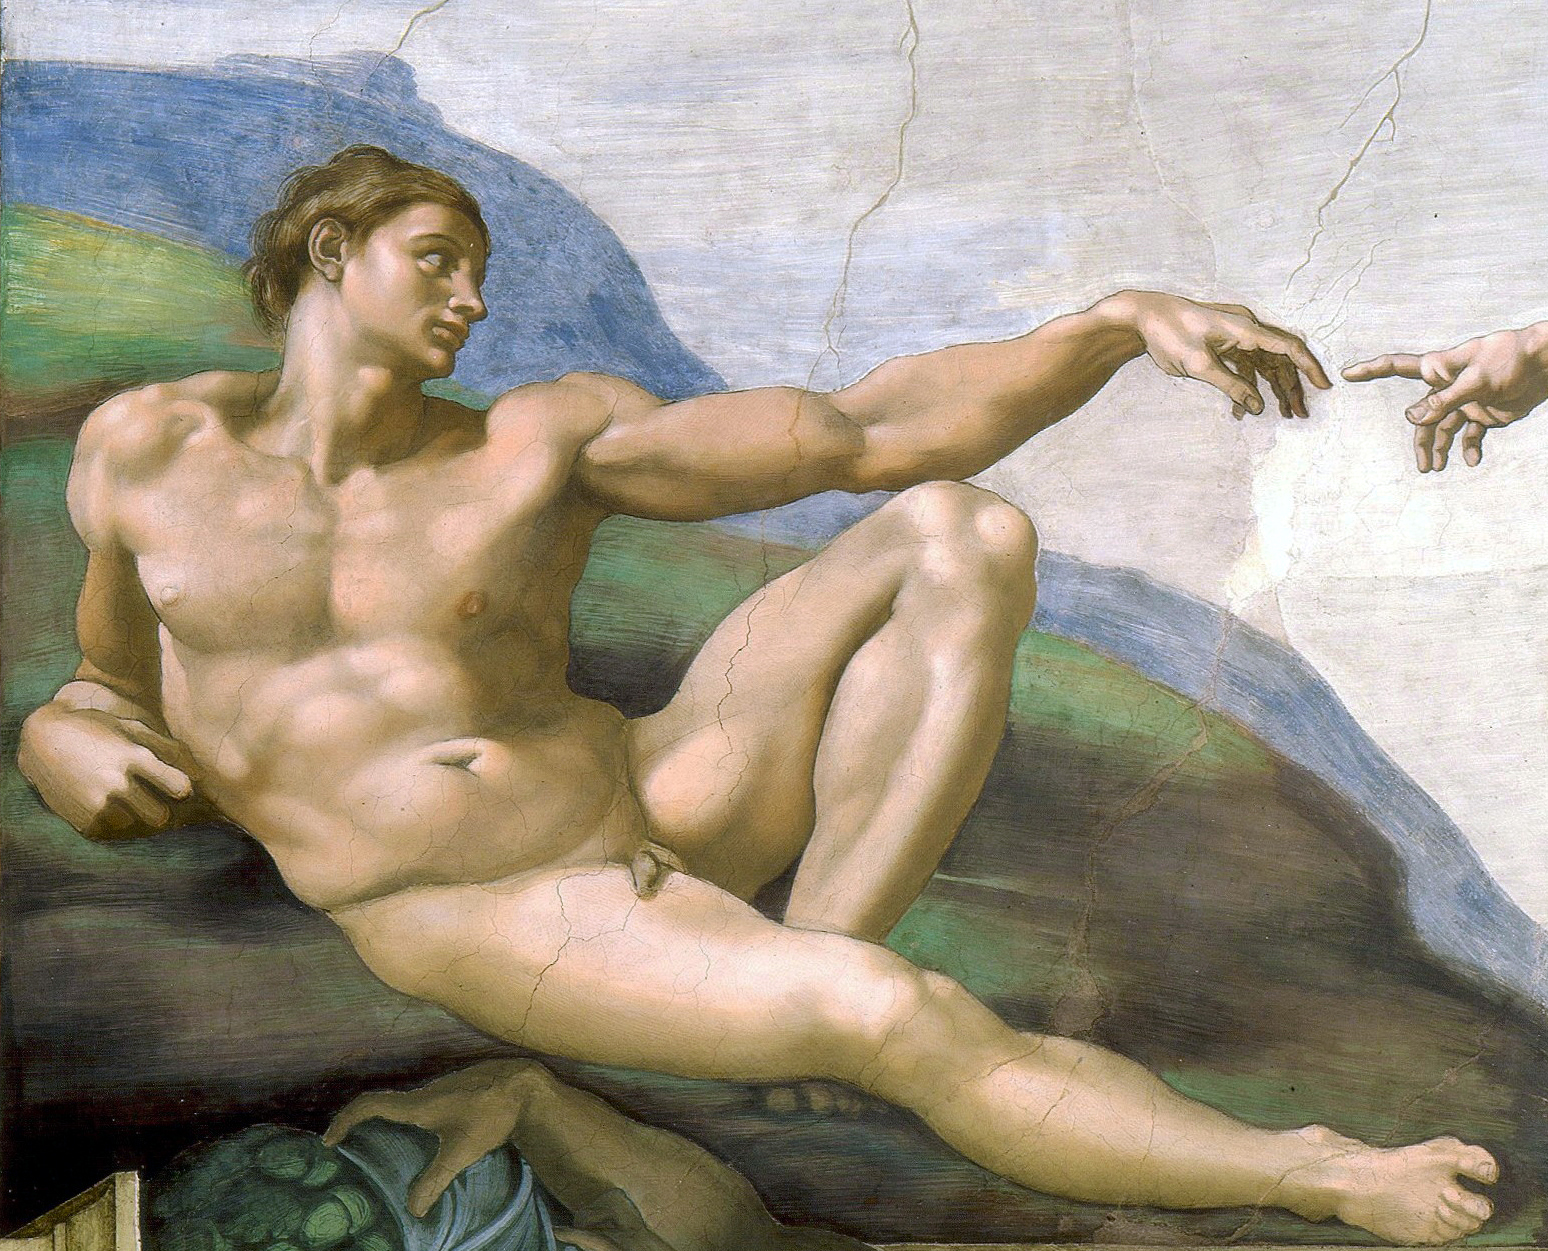 marvin eley by michelangelo buonarroti